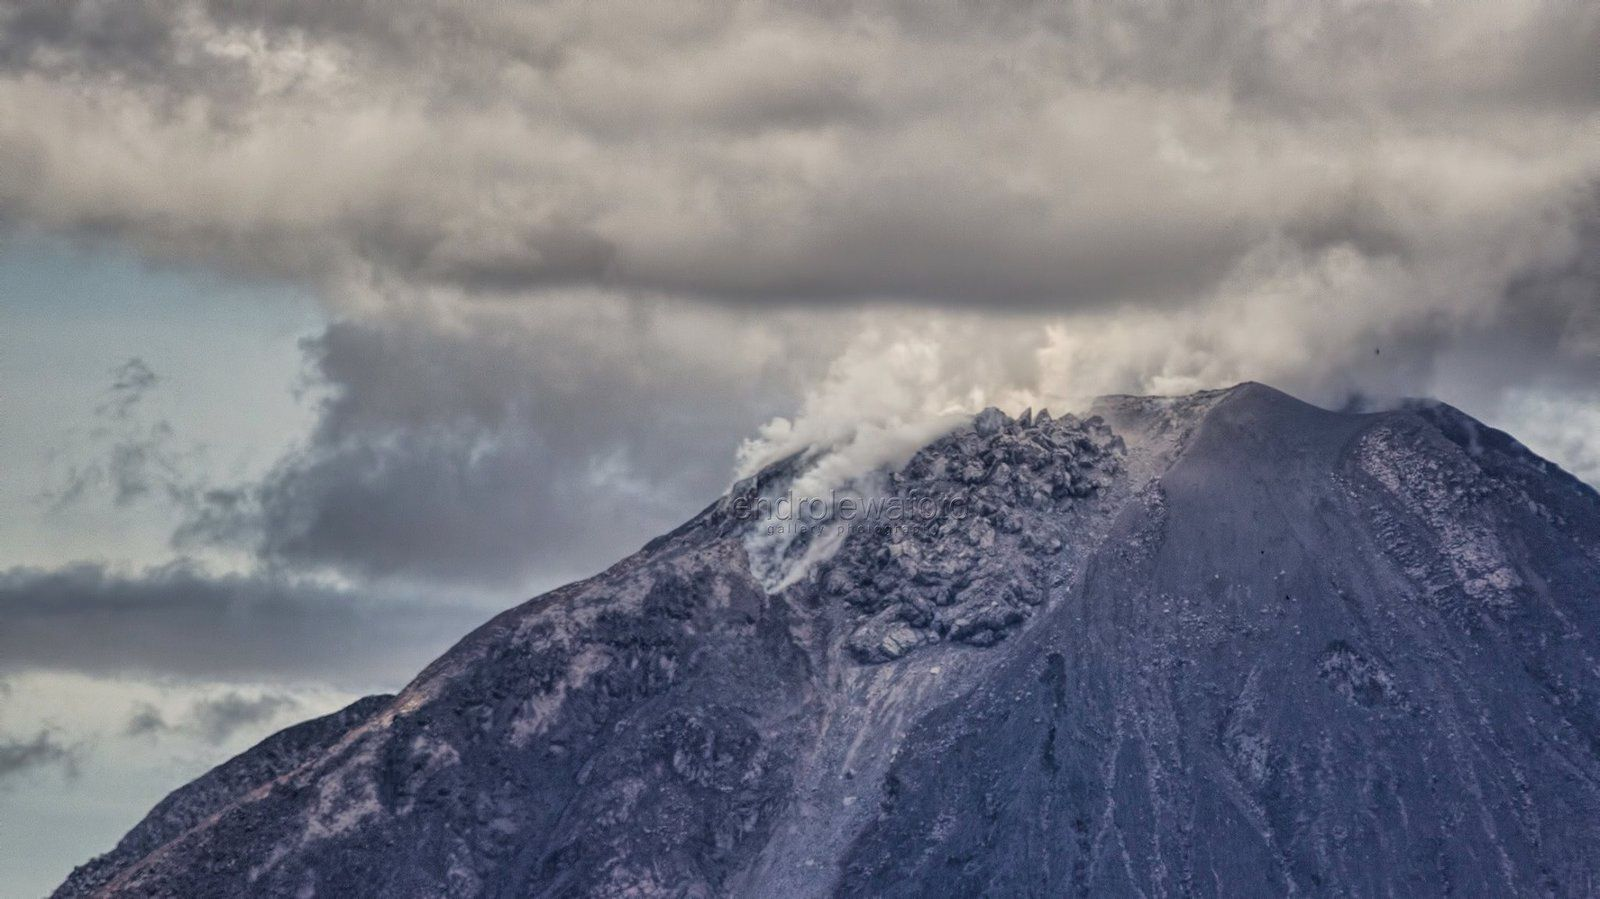 The dome of Sinabung on September 7th / 12:09 local - photo Endro Lewa